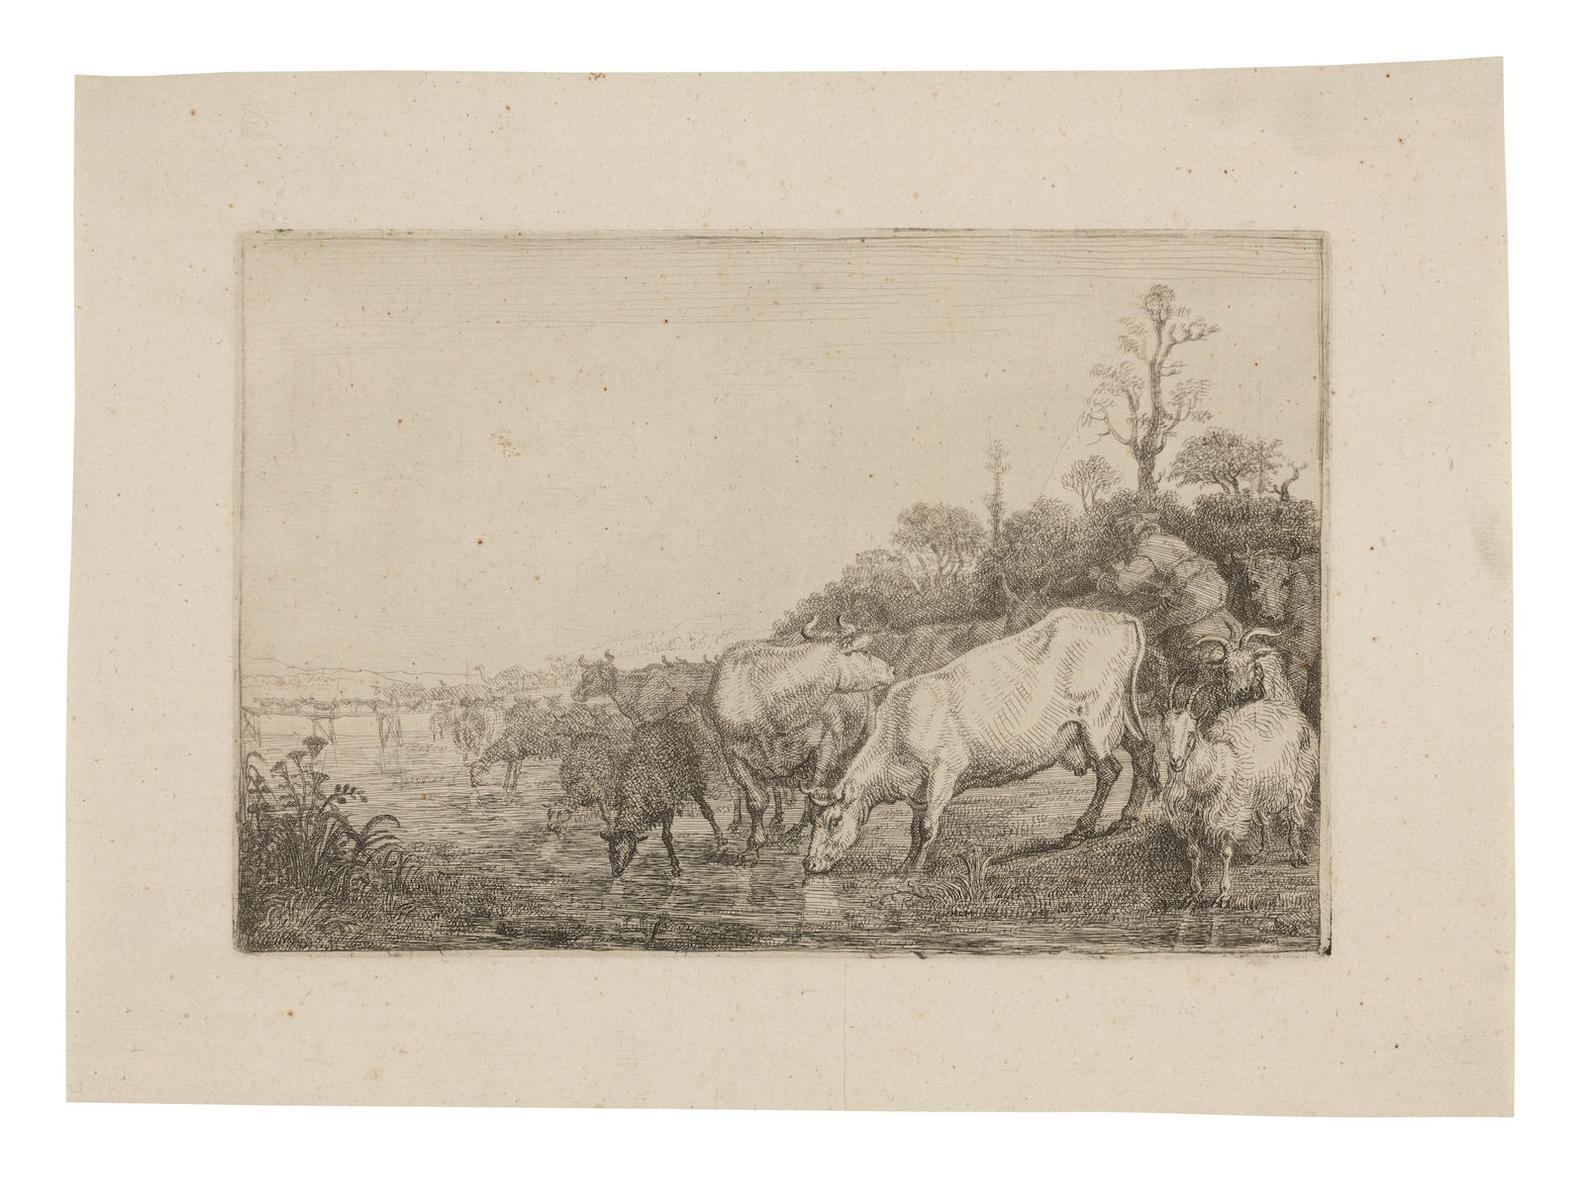 Gerrit Bleker - Cattle Drinking; Claes Corneilisz - Moeyaert The Herd of Cattle (H24)-1638